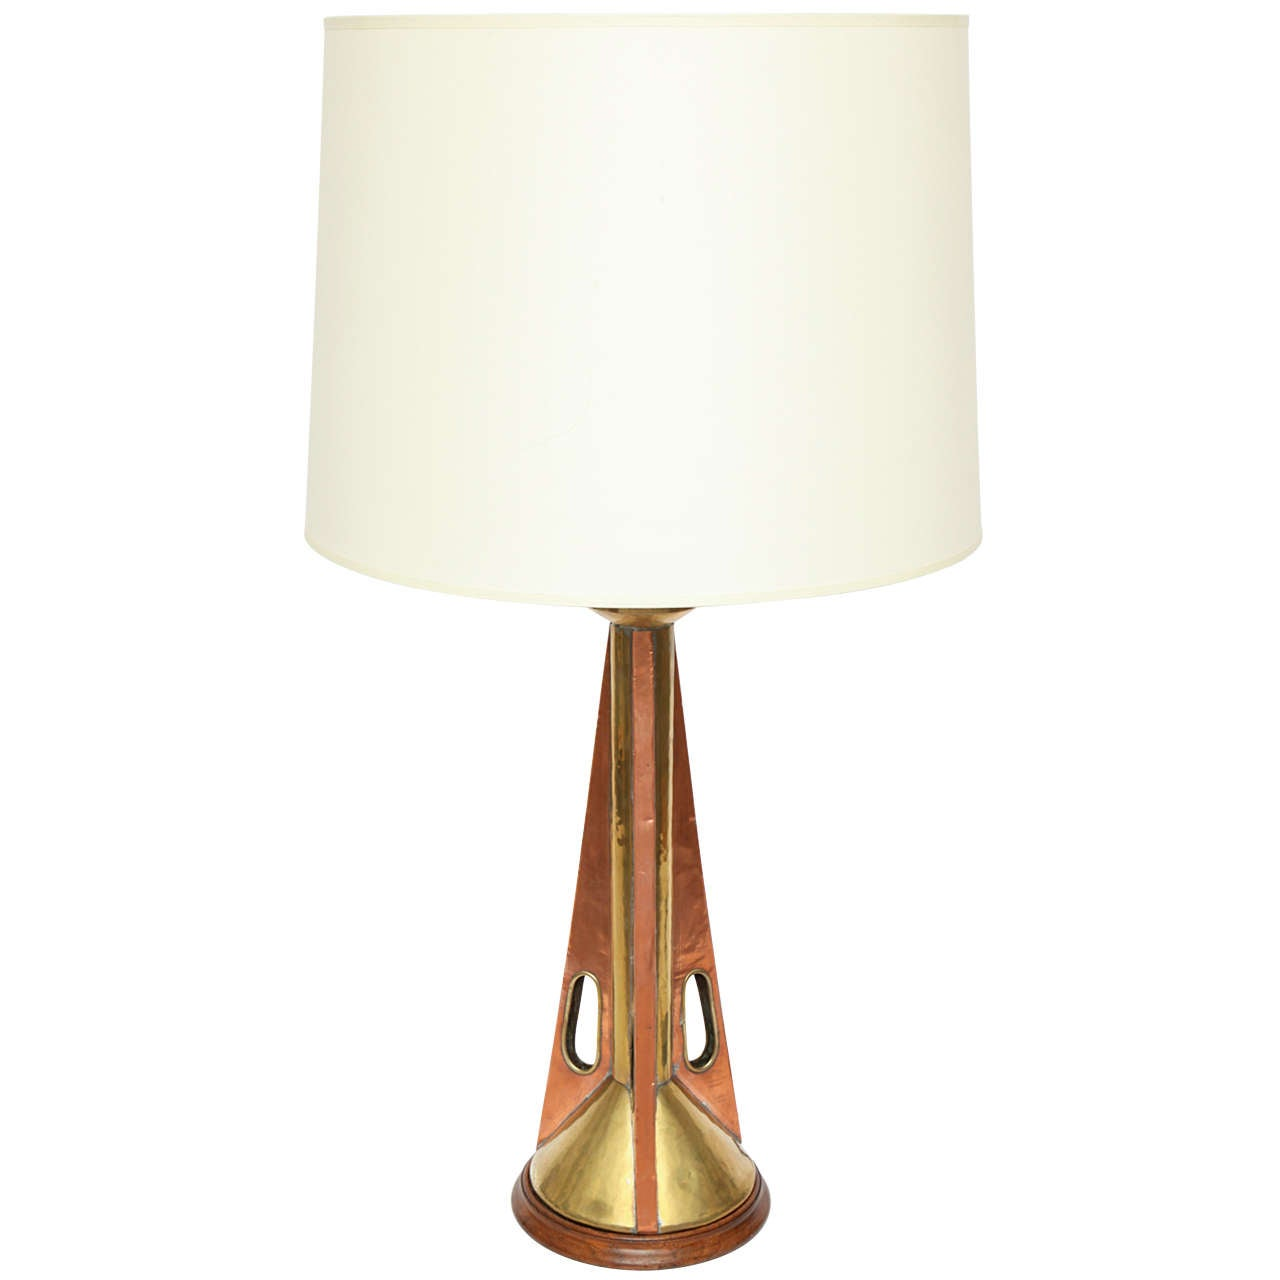 1960s Modernist Brass and Wood Table Lamp For Sale